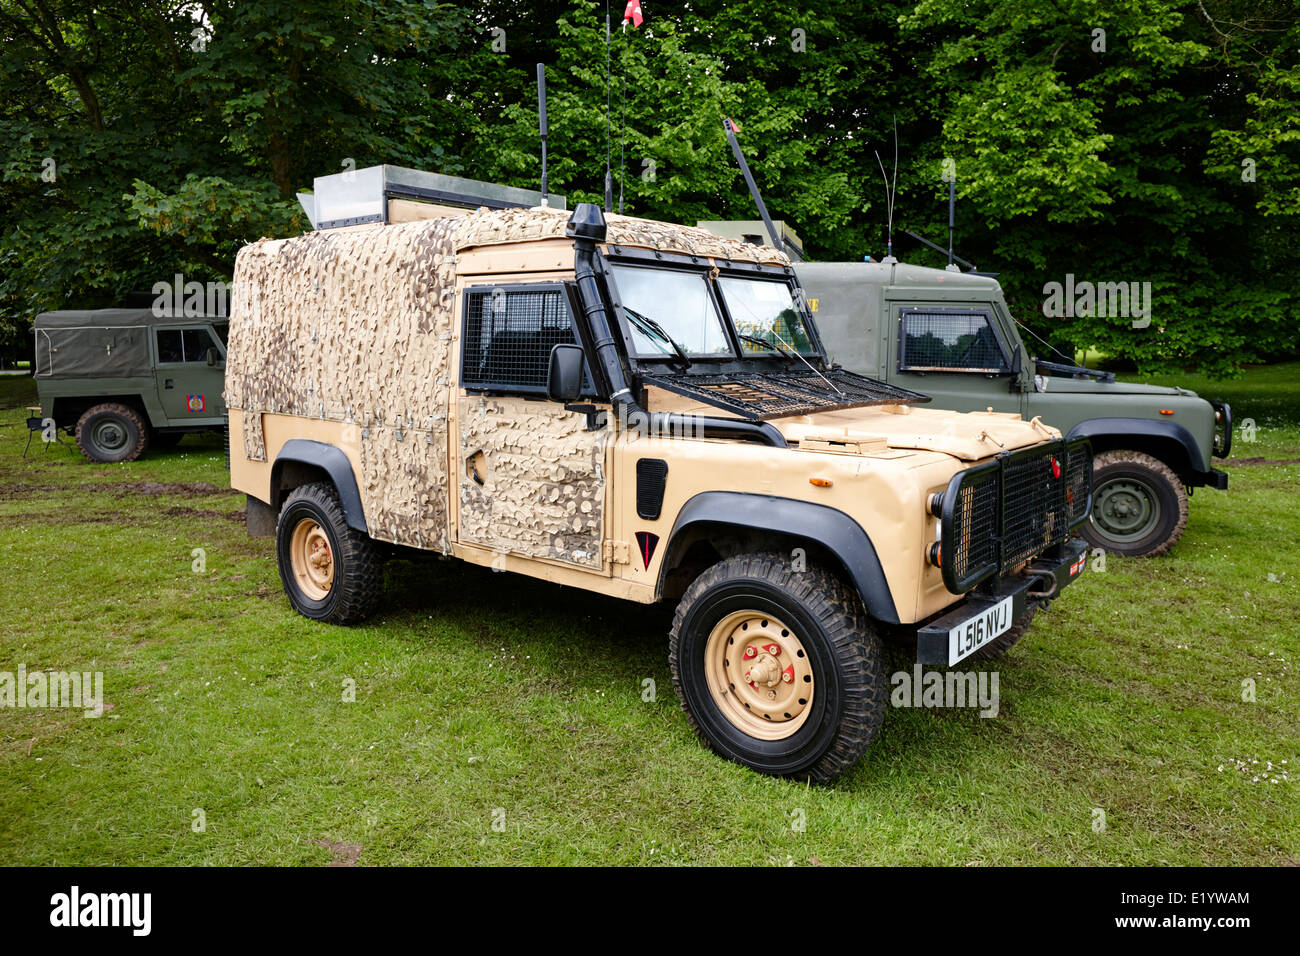 british army snatch landrover in desert colour pattern at military vehicle display bangor northern ireland - Stock Image